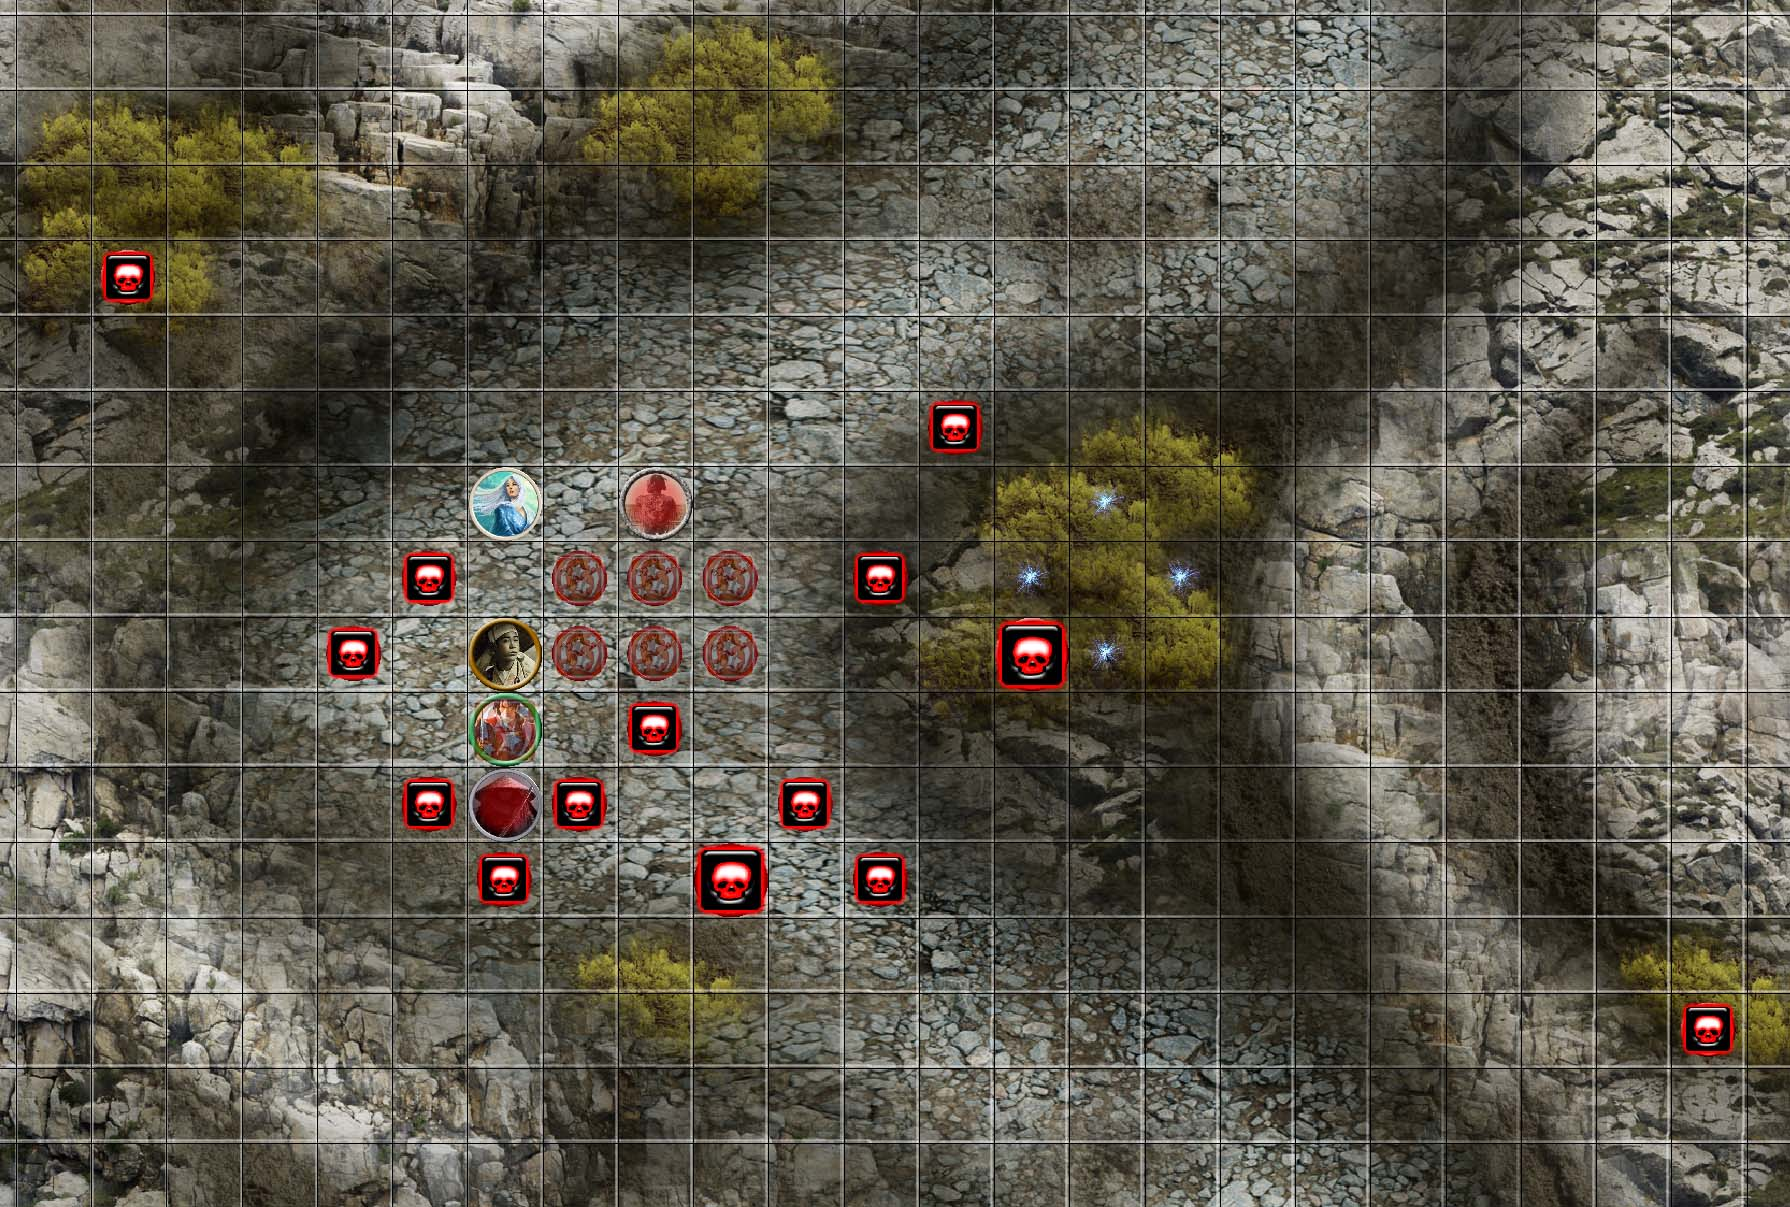 mountain_ambush_2.jpg